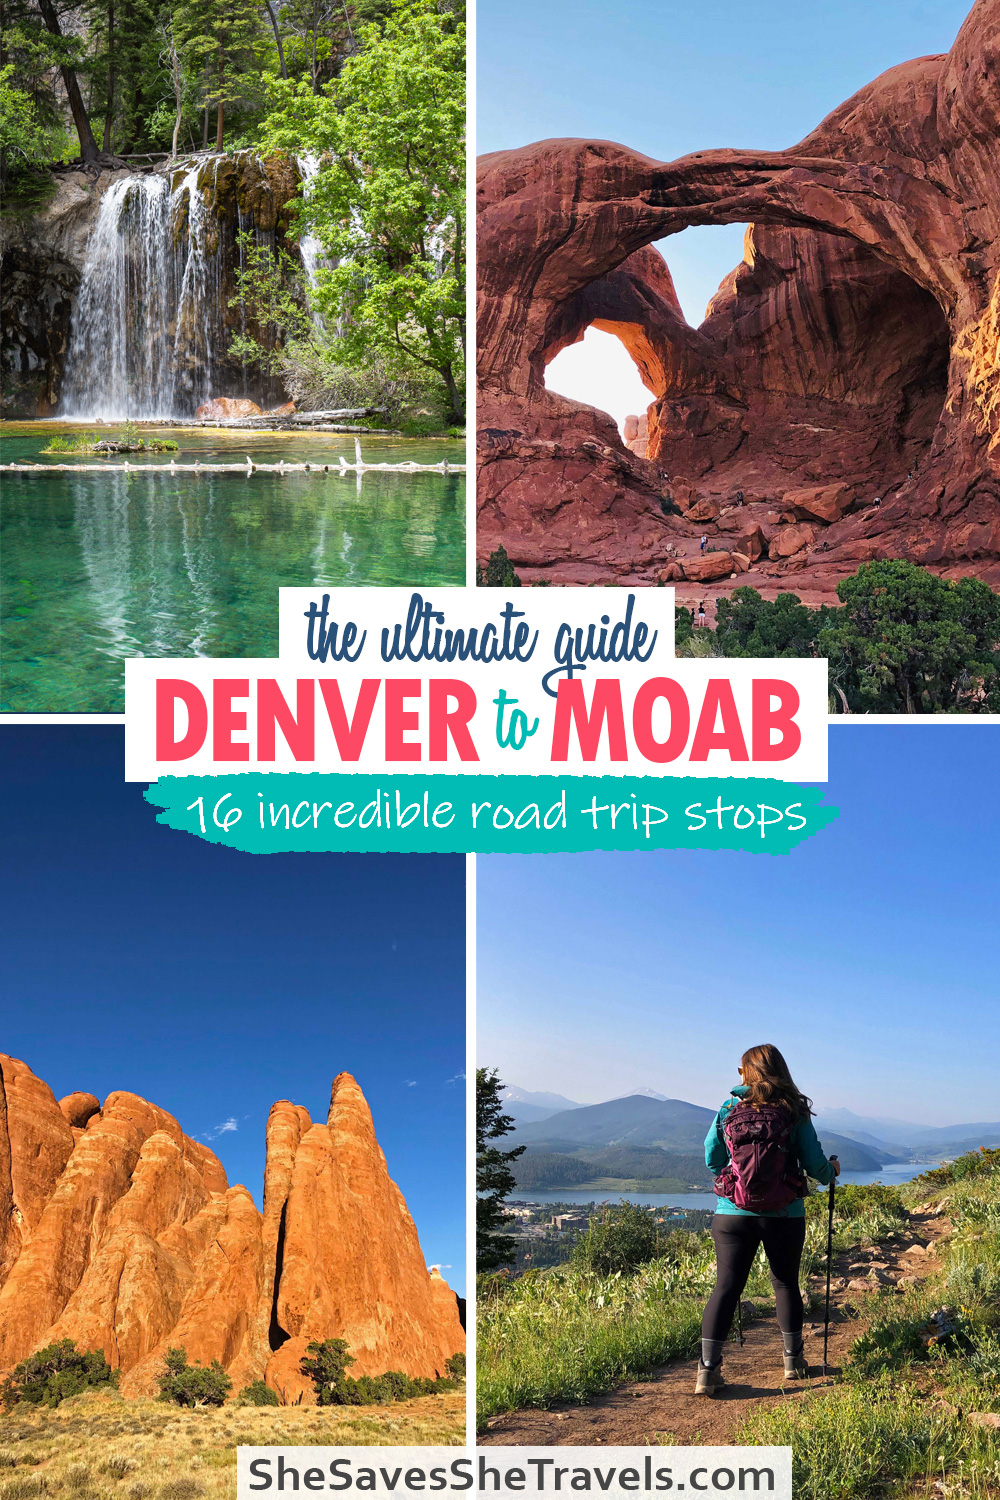 the ultimate guide denver to moab 16 incredible road trip stops